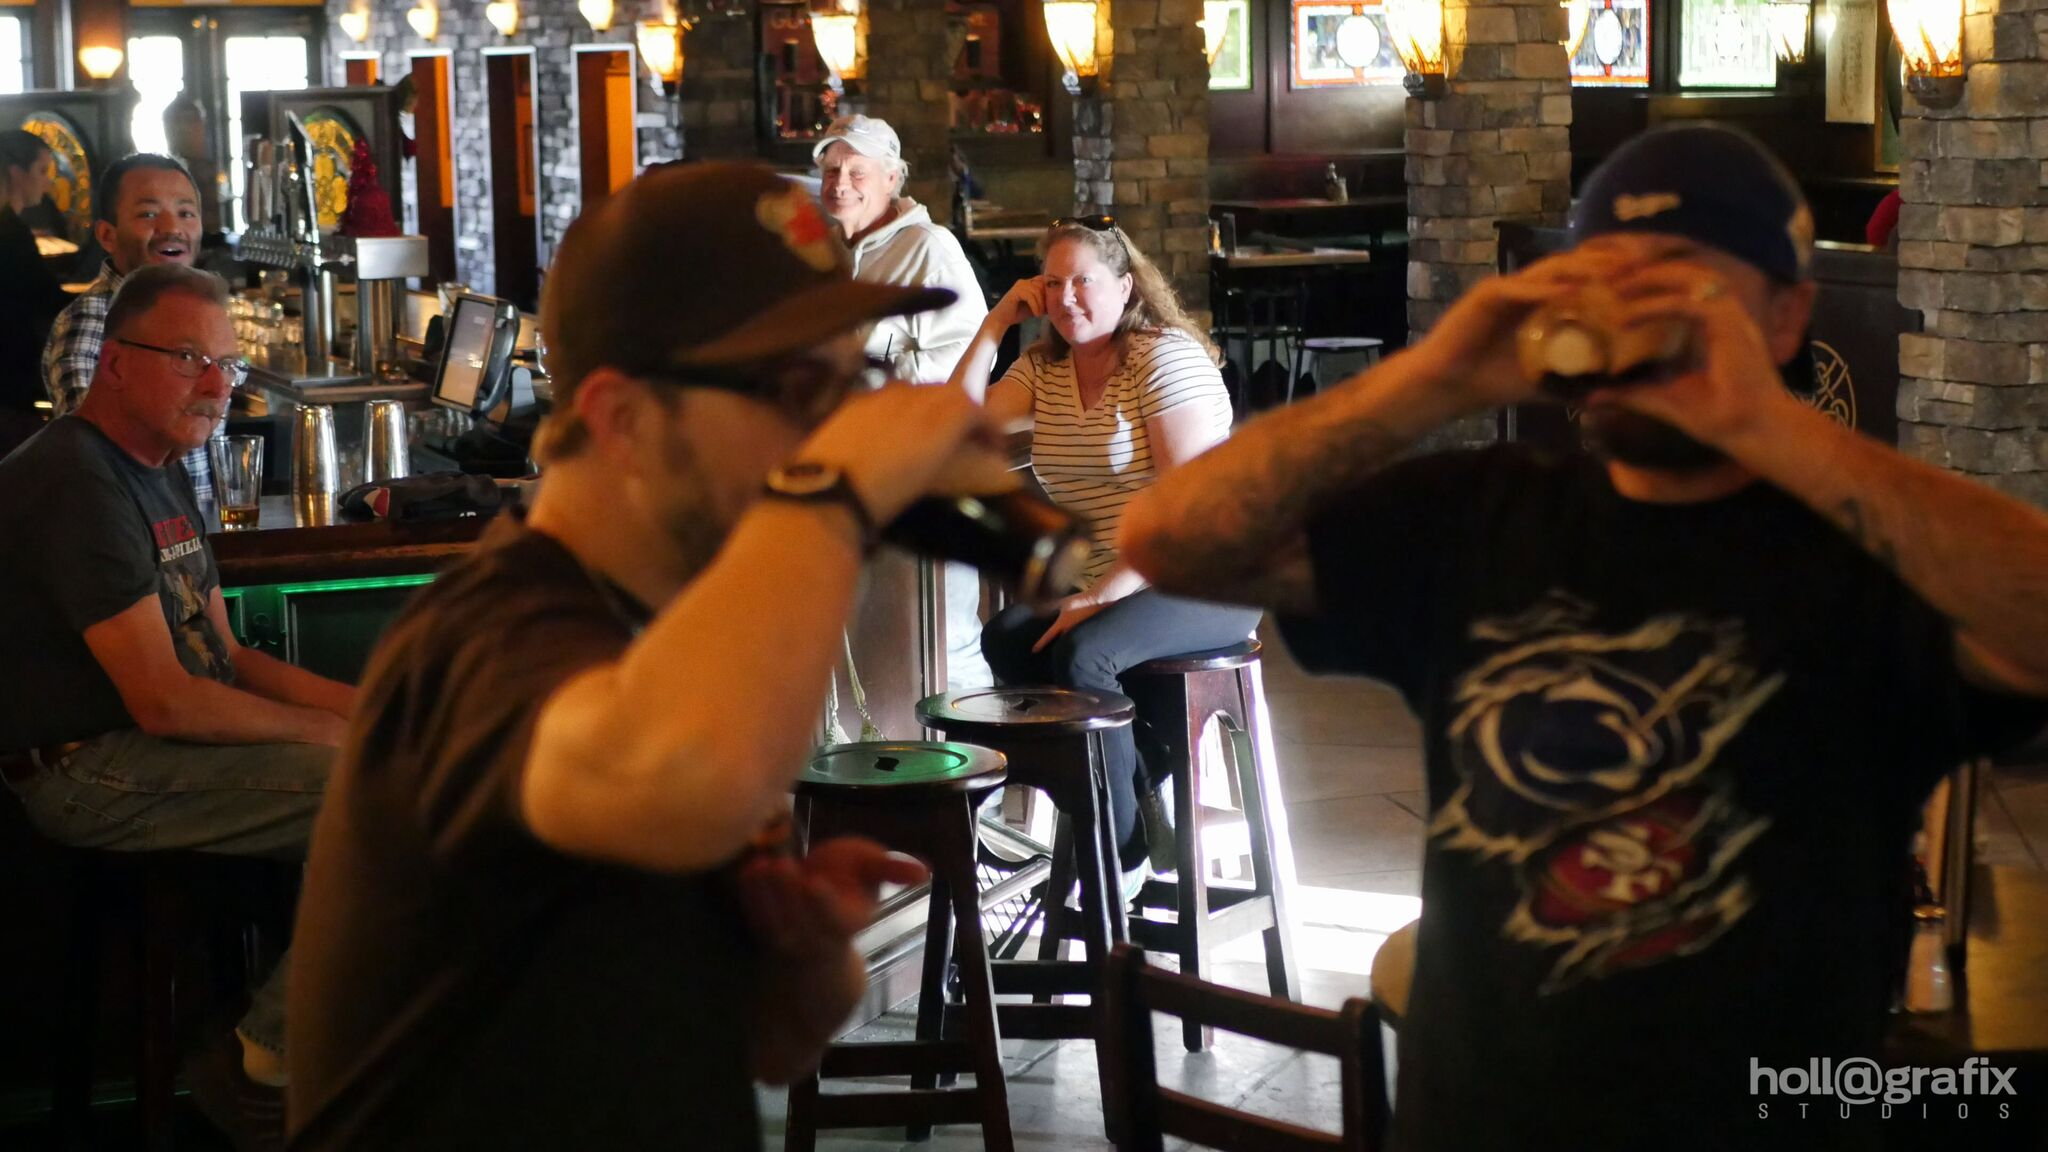 The Guinness Pint-Off. Congrats to Pat! Er, sorry, MATT, for crushing that pint in mere seconds